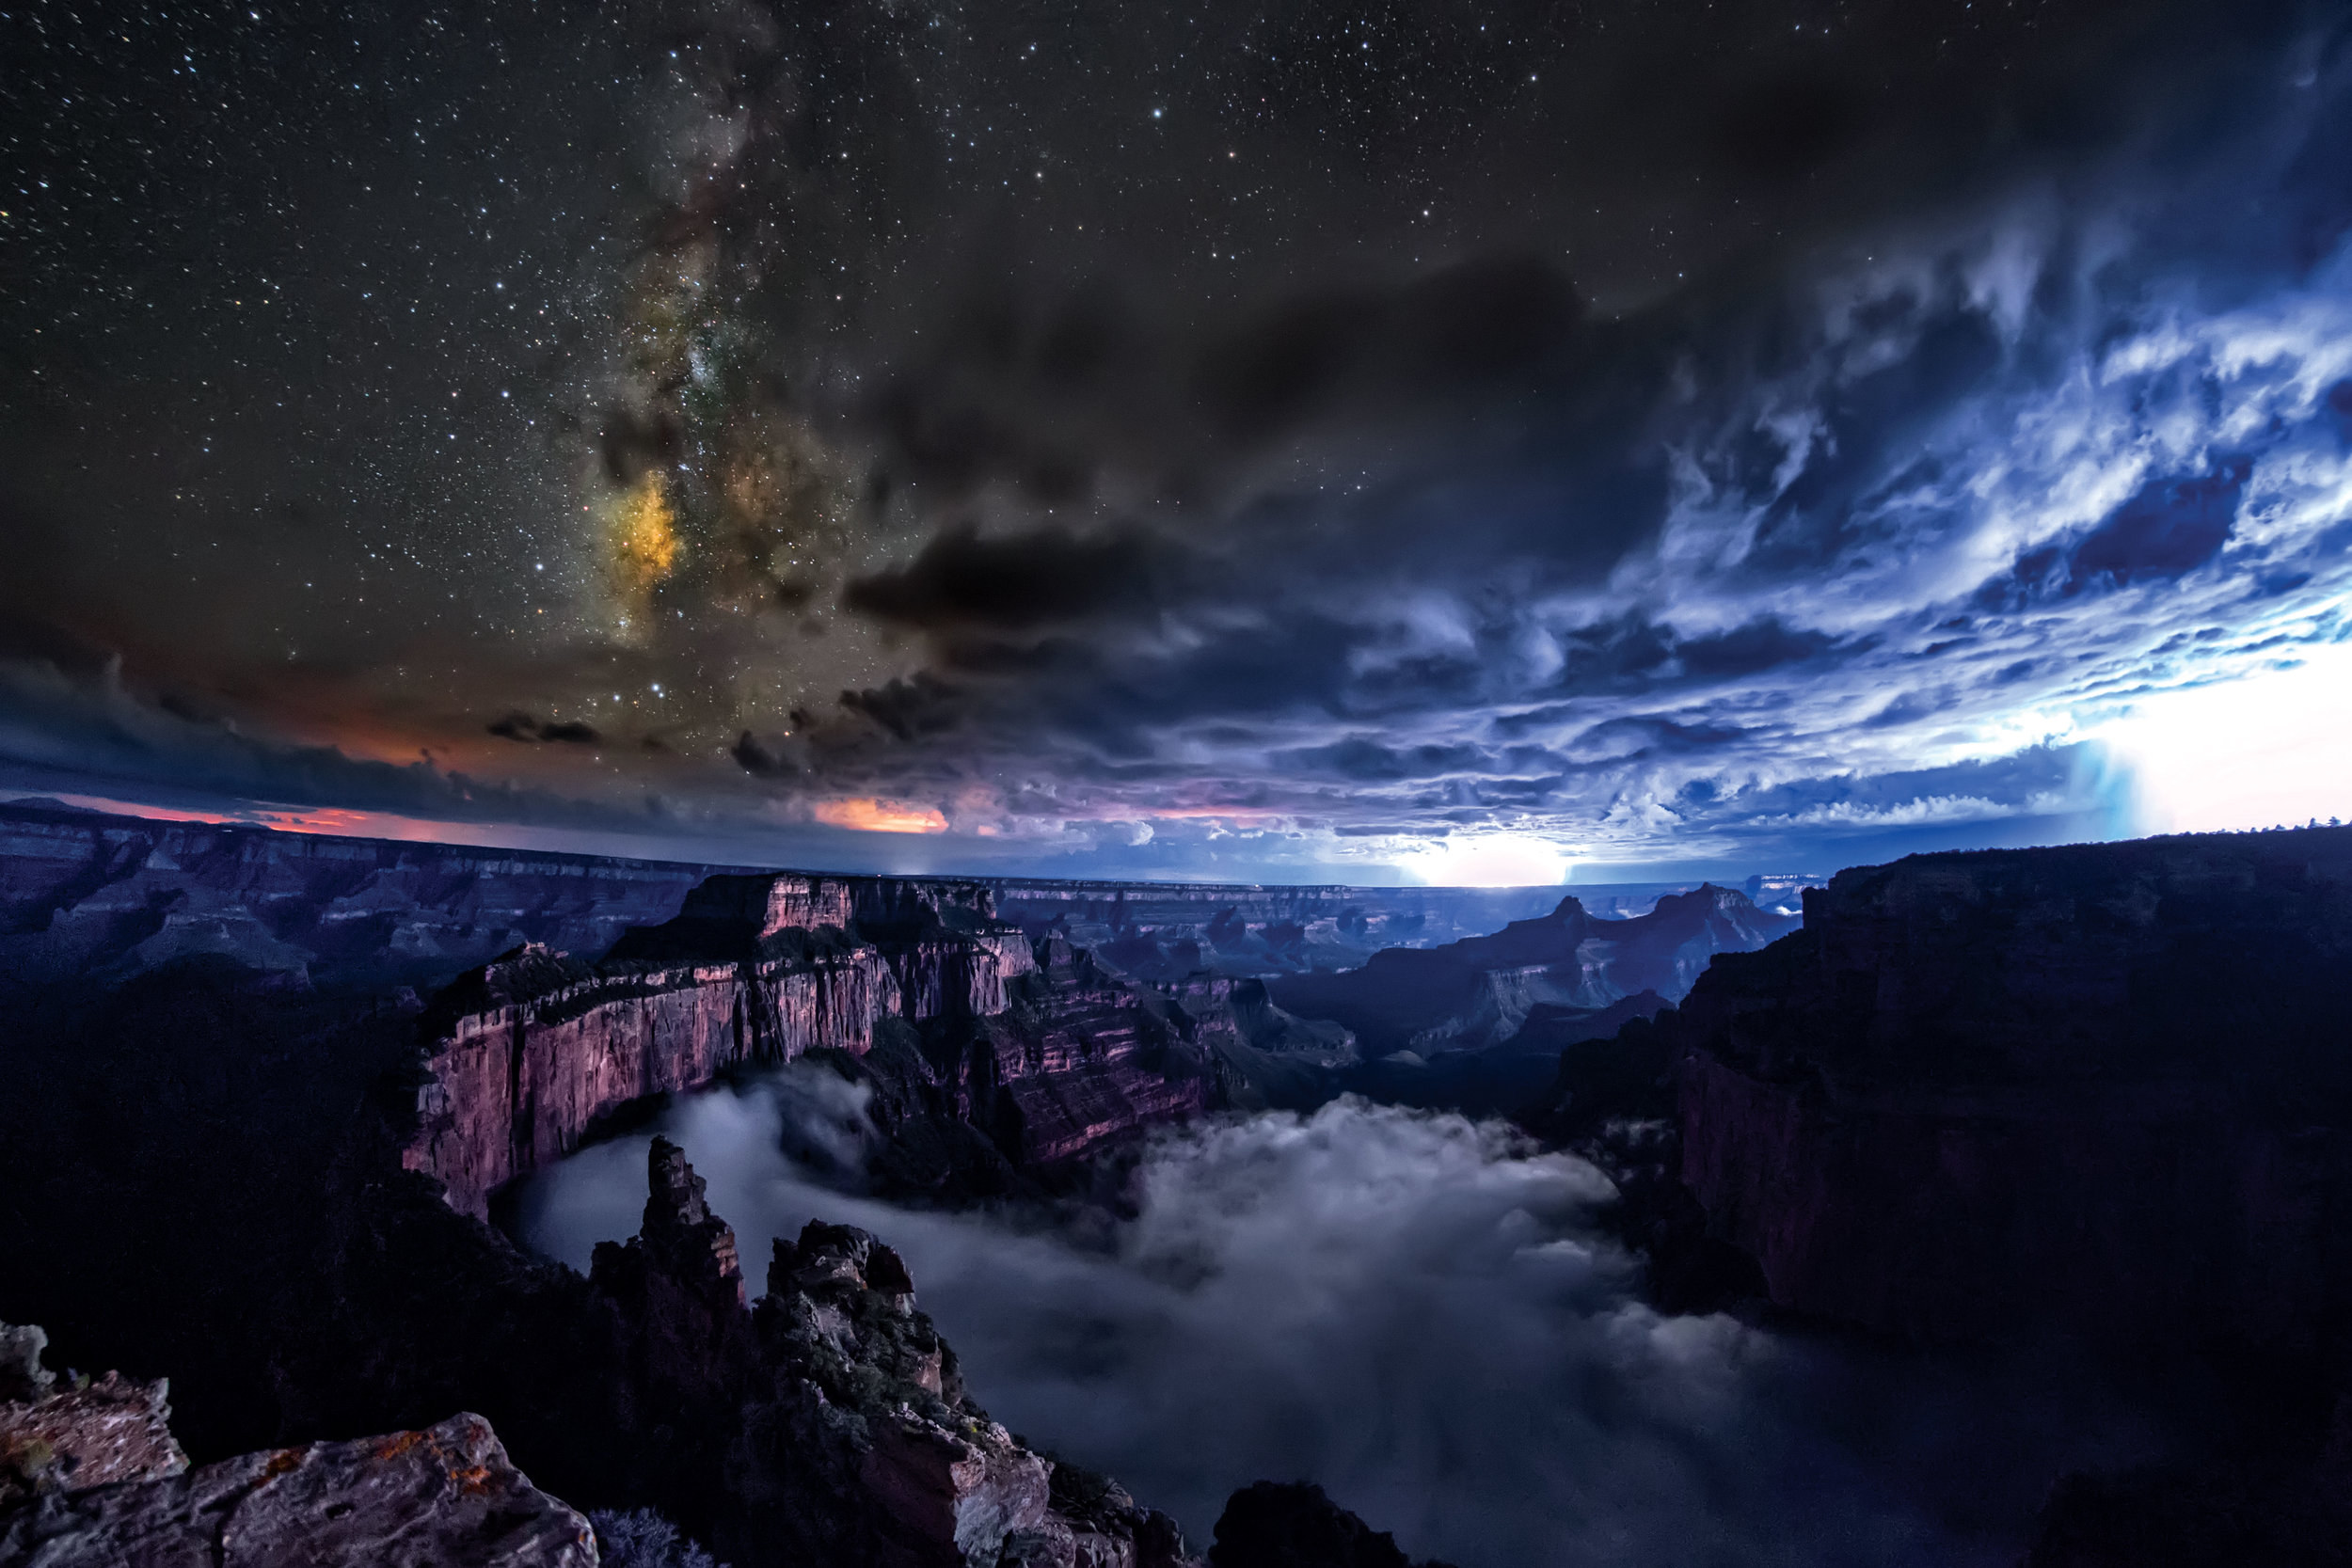 ODIN'S THRONE | Grand Canyon National Park, Arizona |  BUY PHOTO PRINT